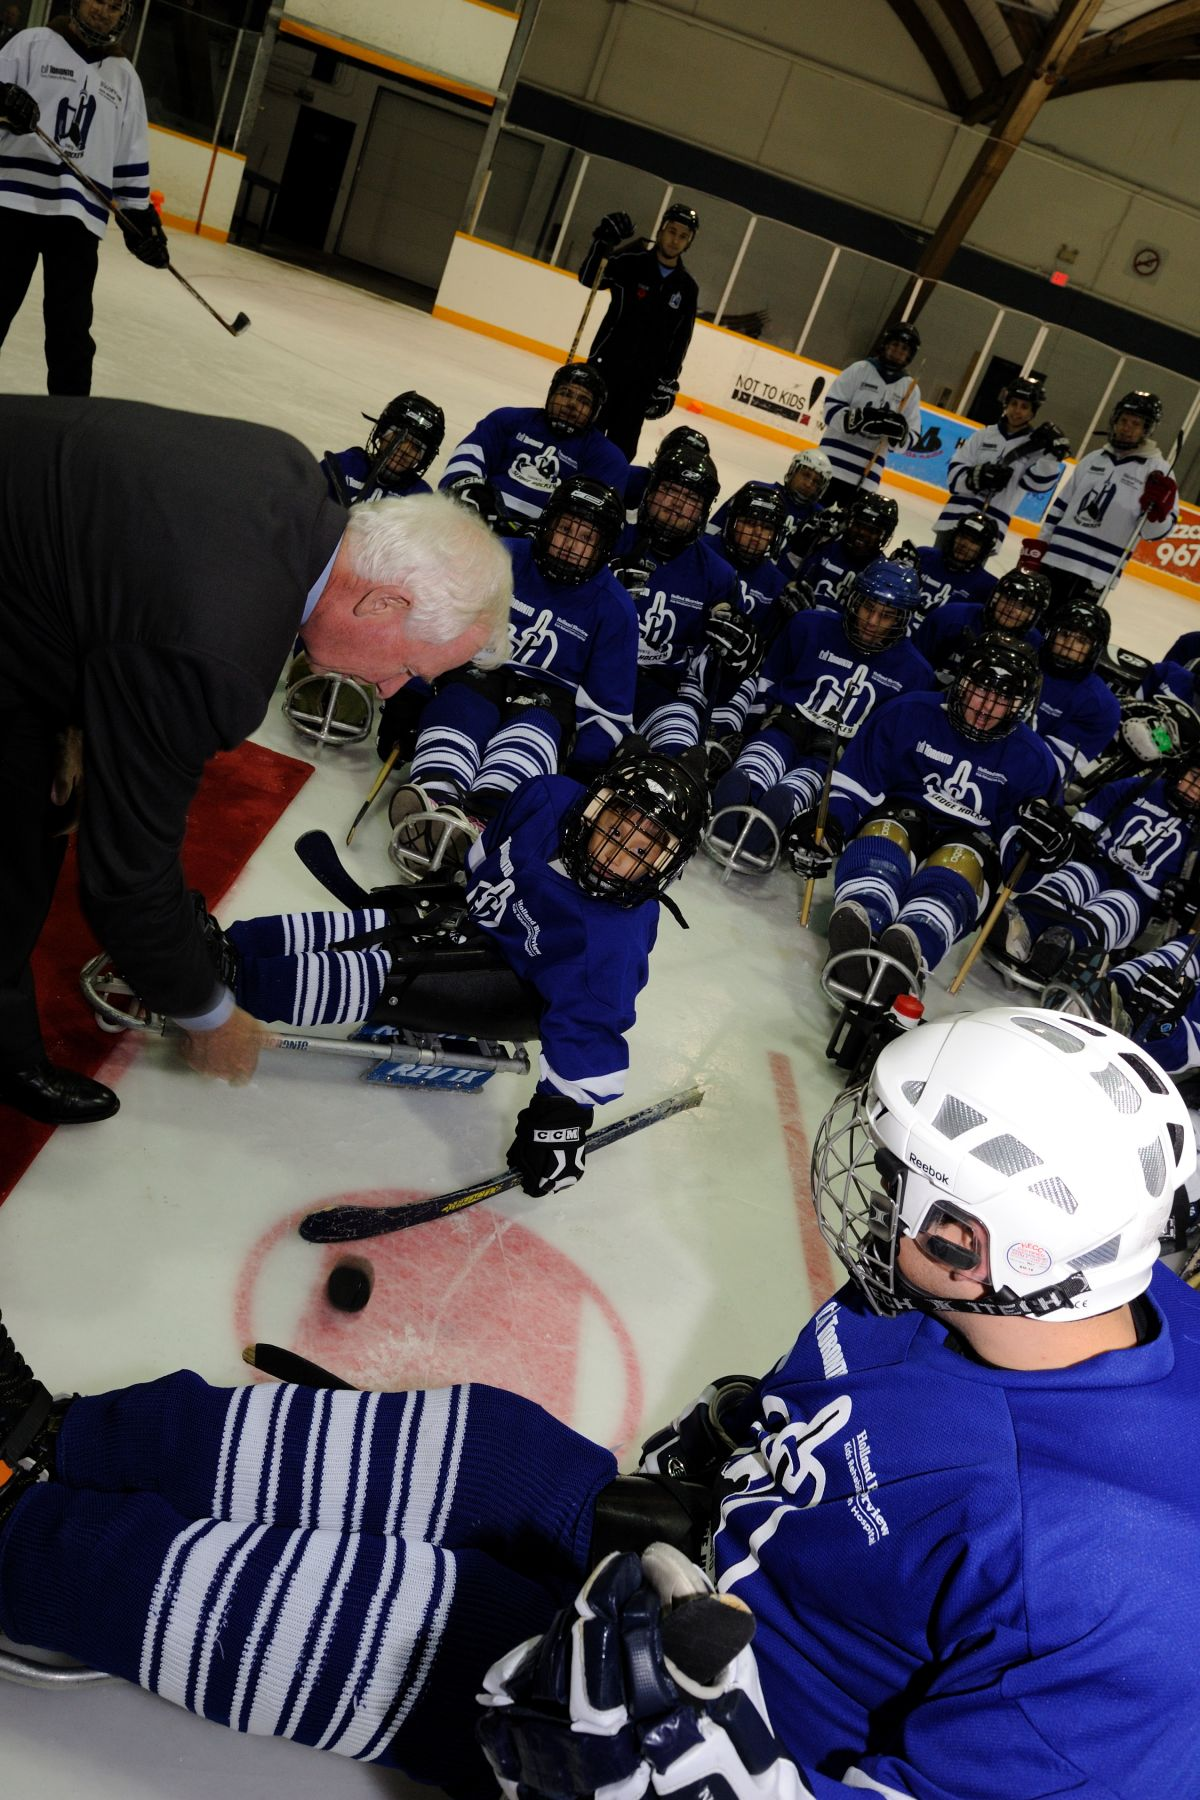 His Excellency conducted the official puck-drop to kick off a friendly game of sledge hockey.